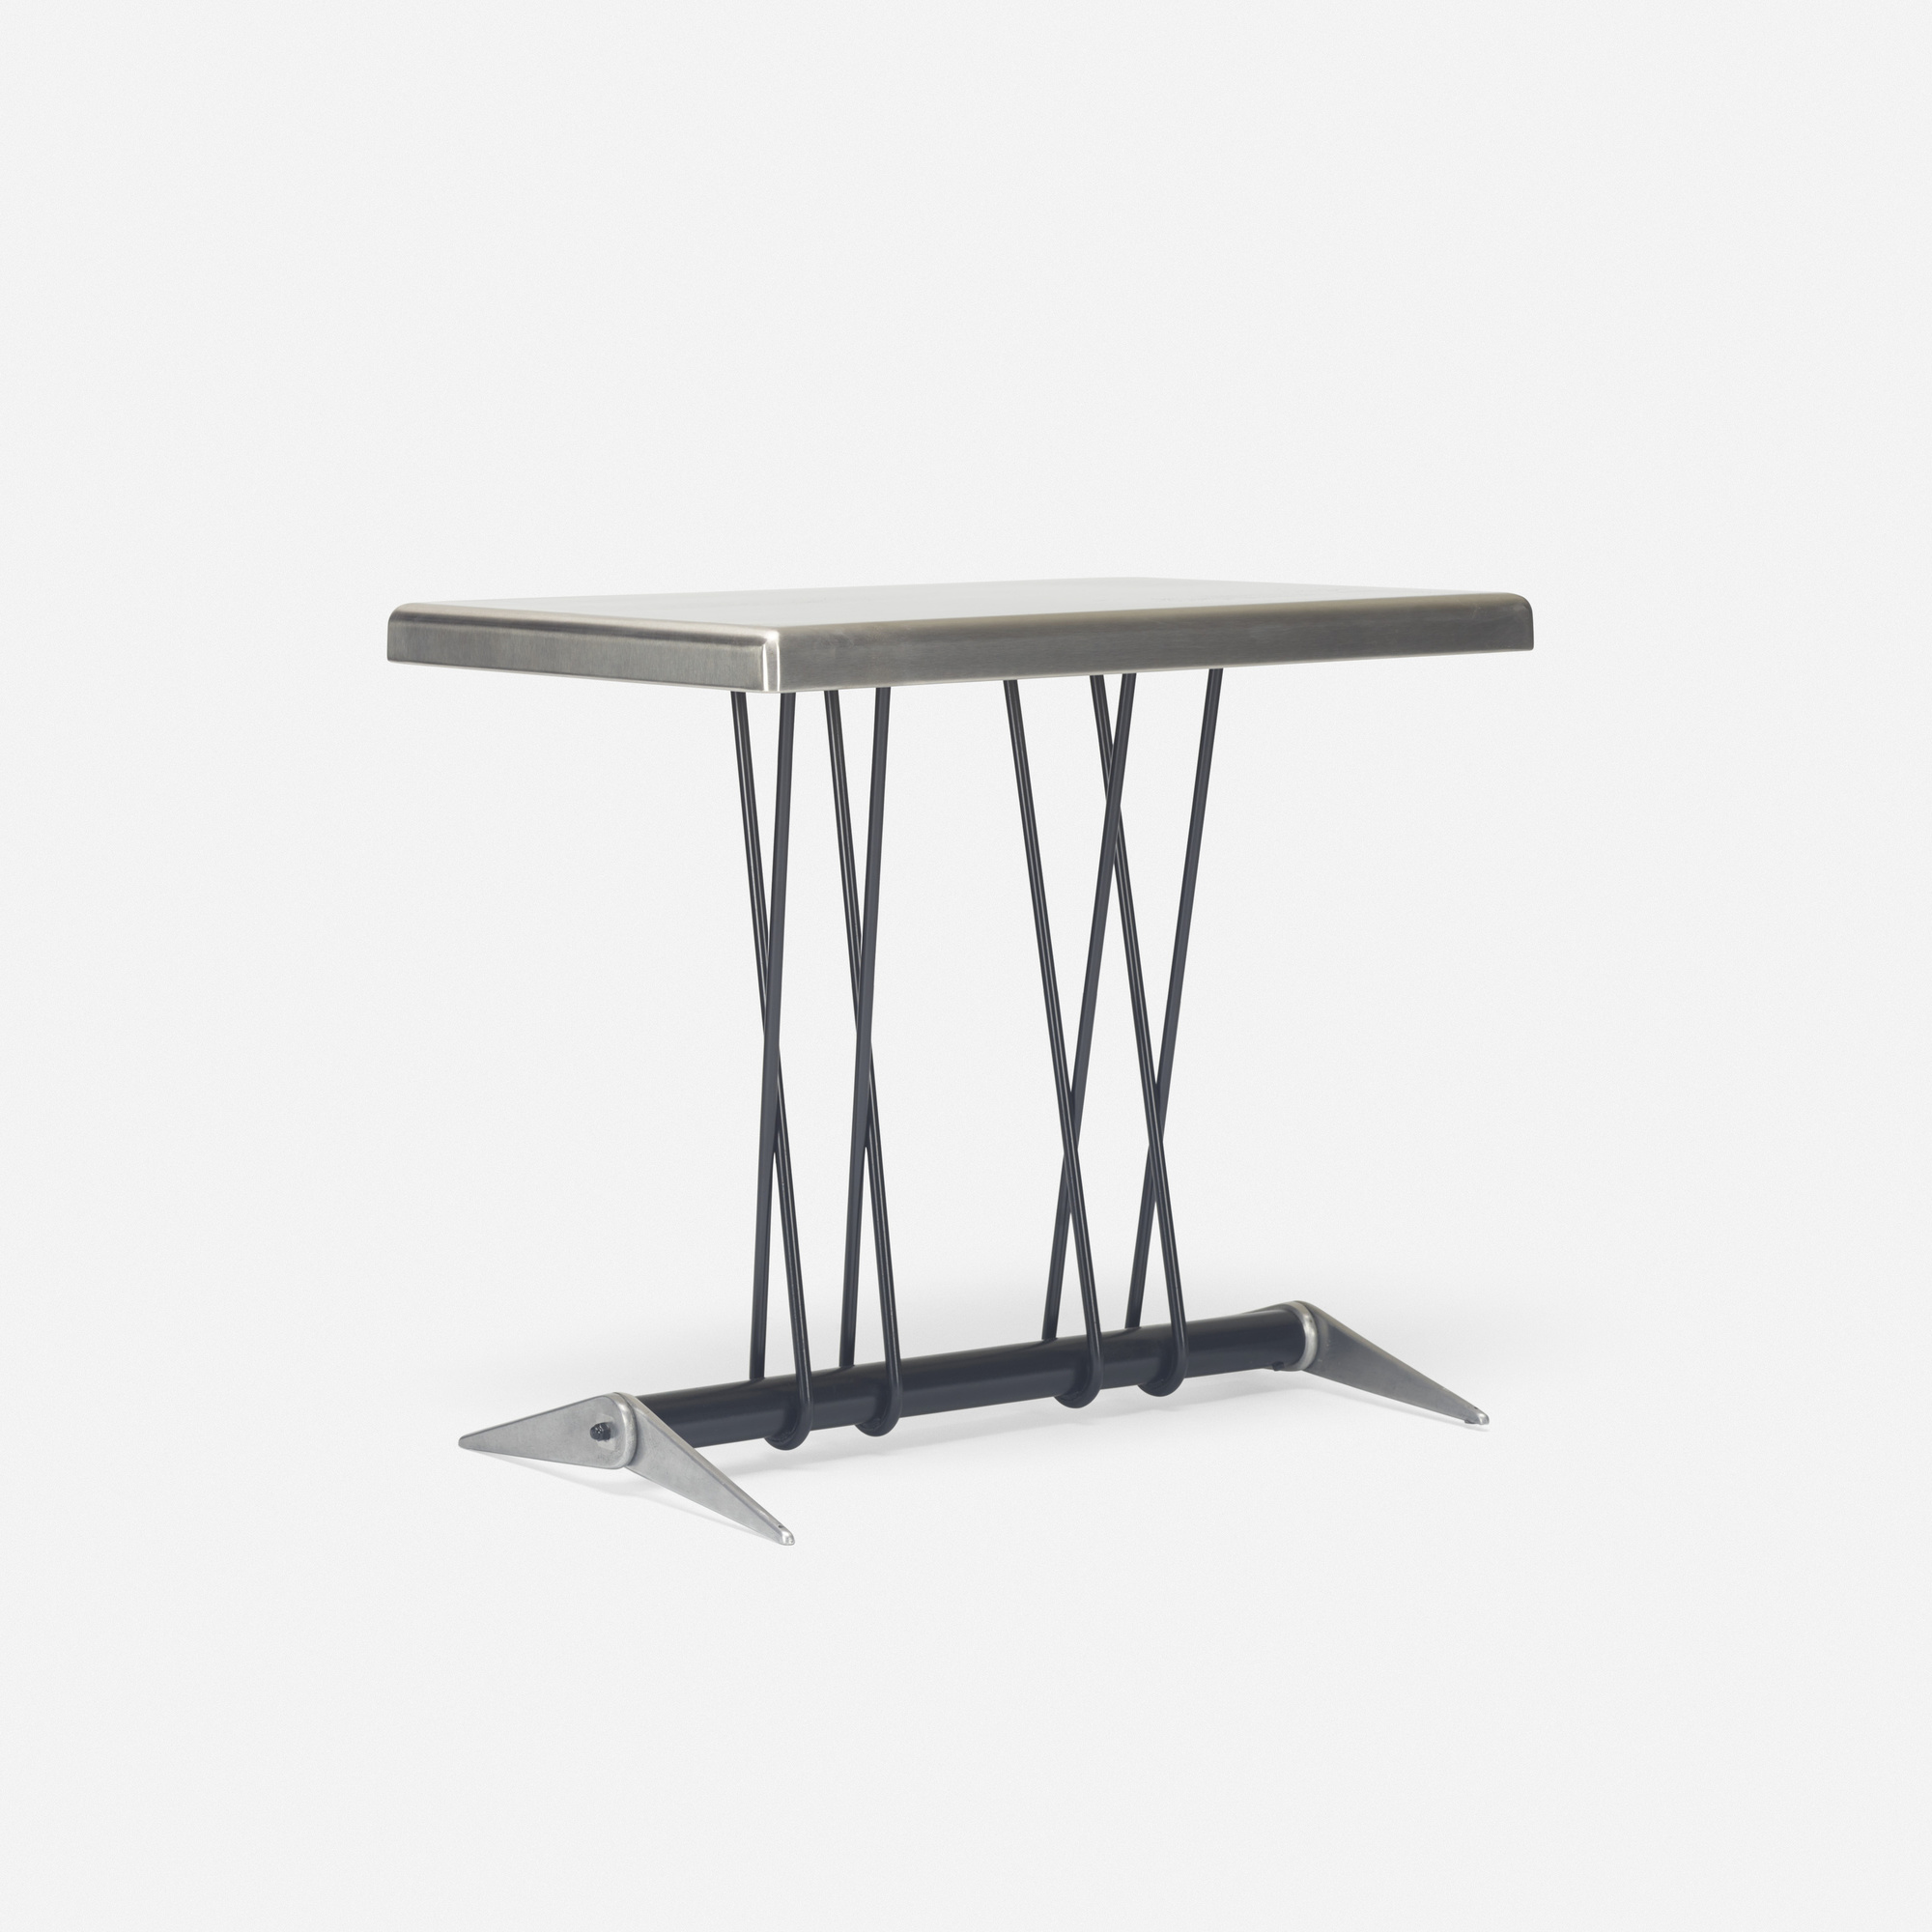 103: French / table (1 of 1)